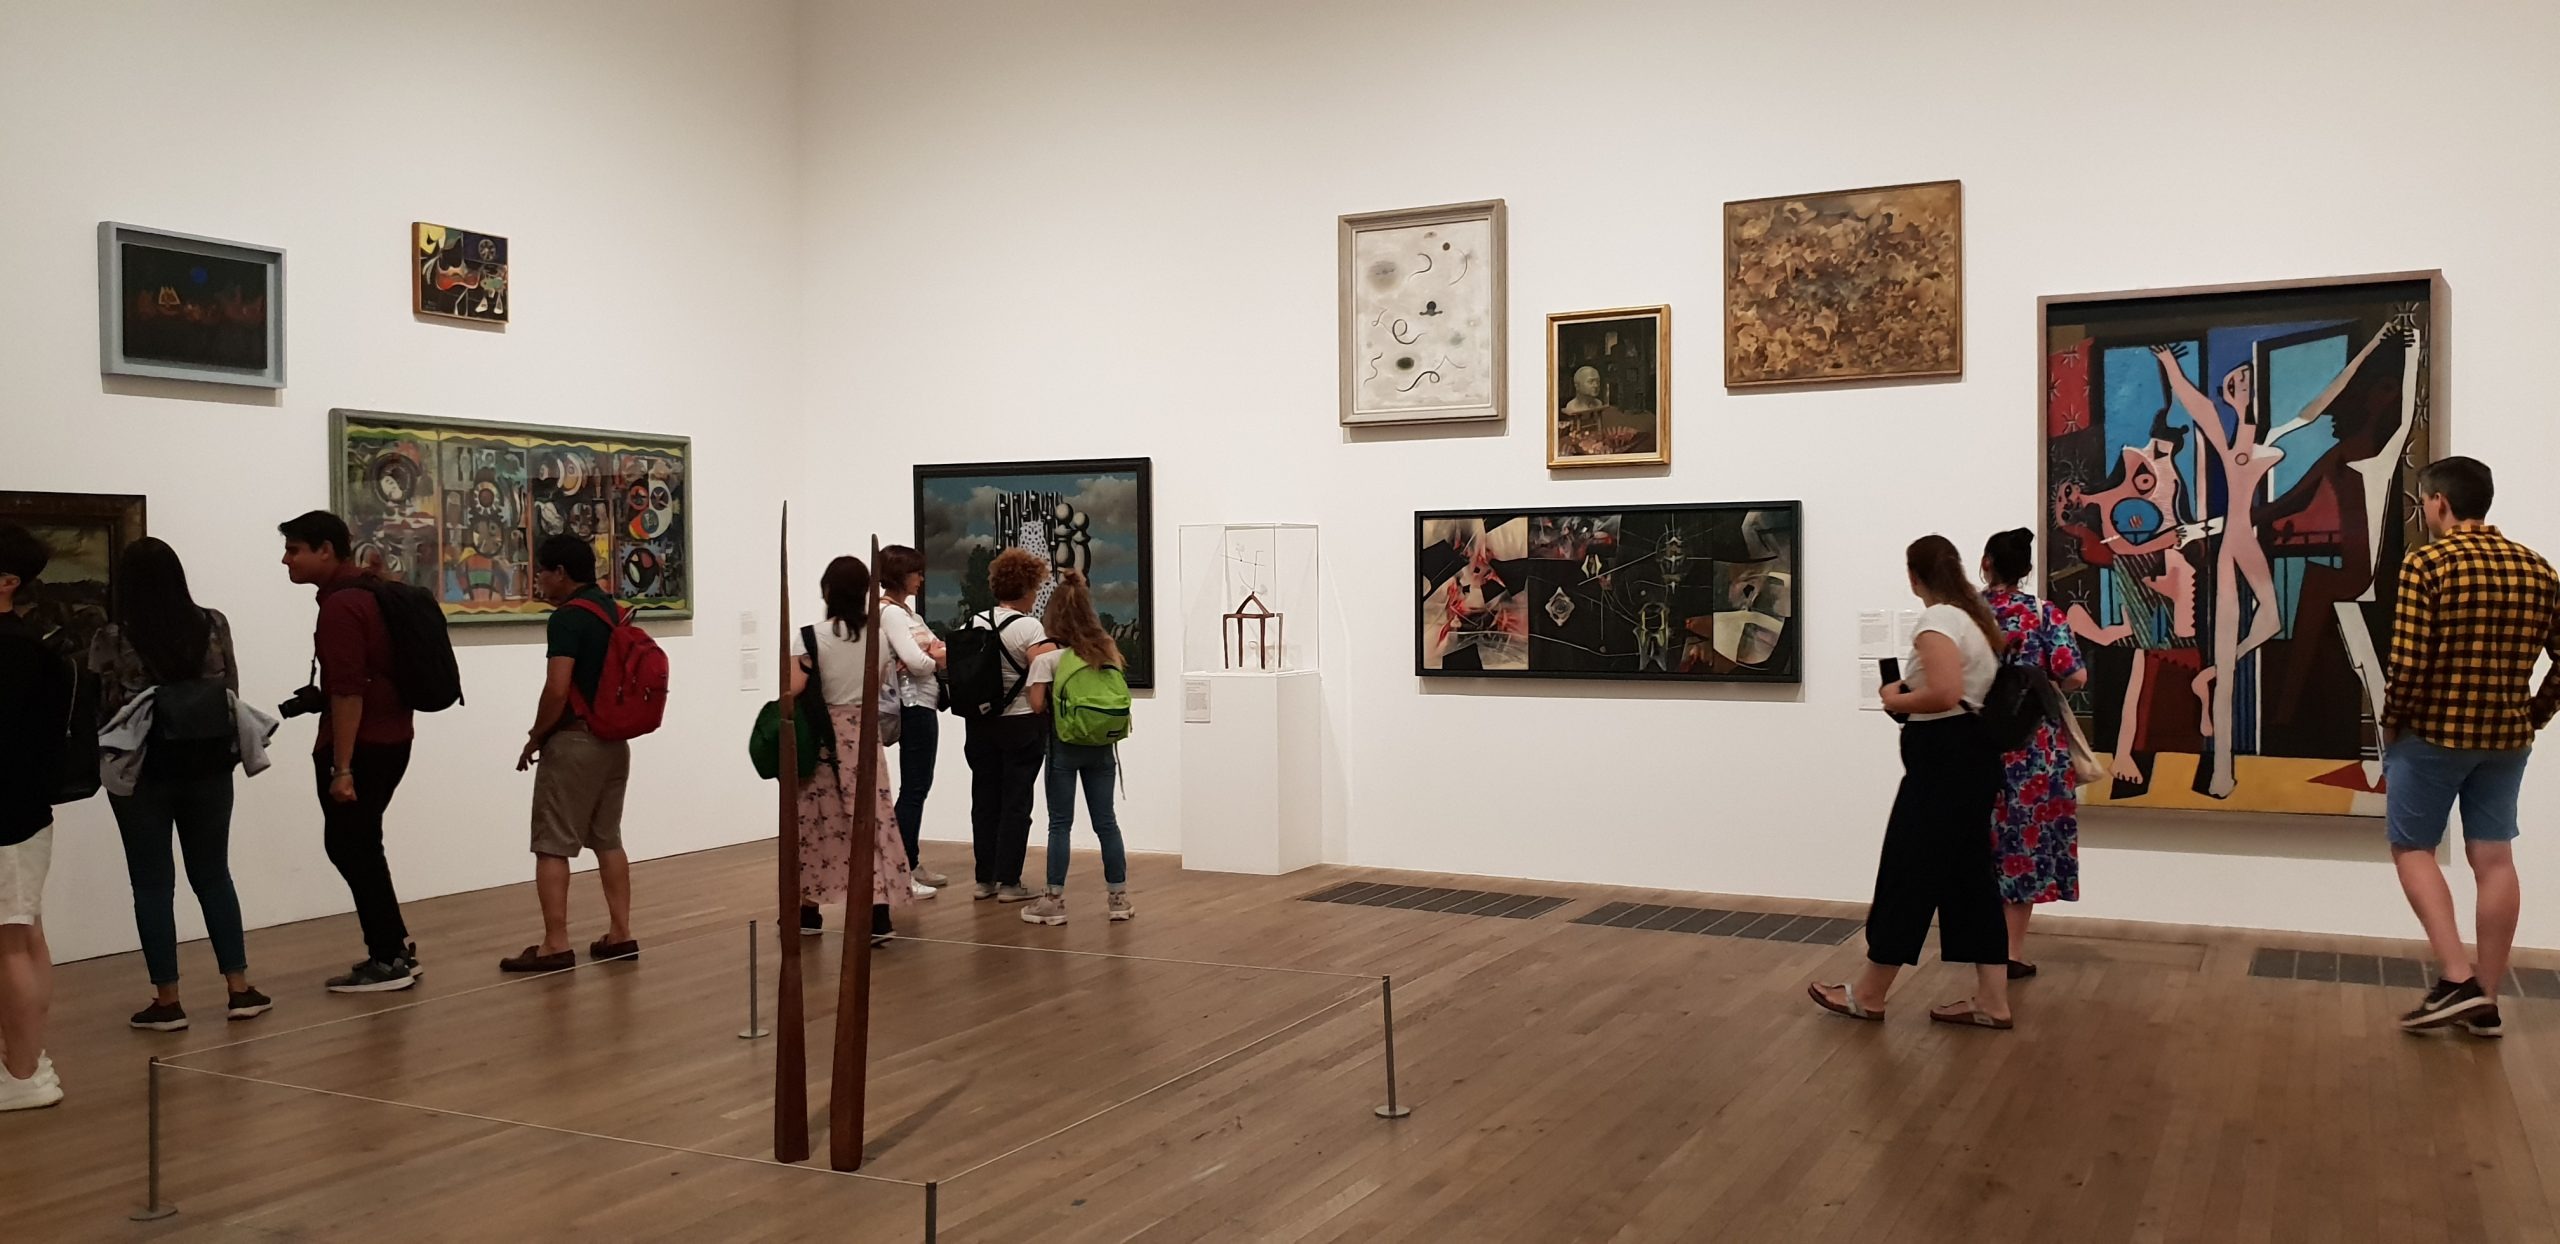 Gallery in Tate Modern, Southbank, London